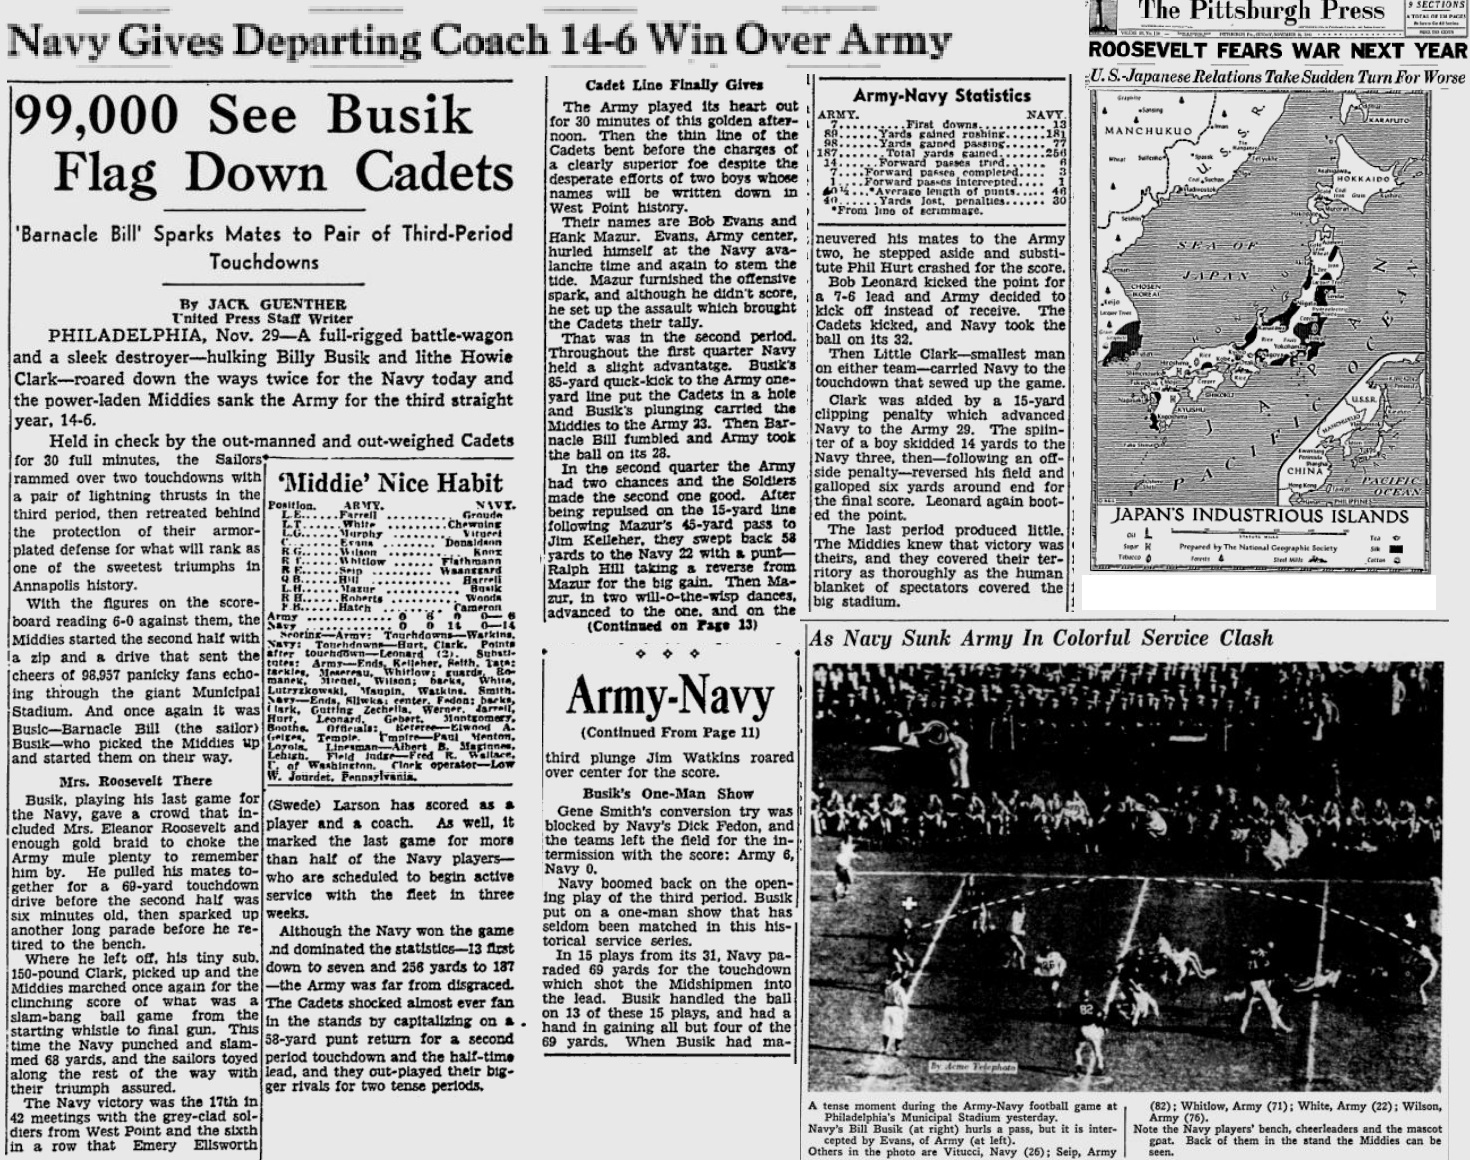 ArmyFB_1941_vsNavy_PittsburghPress_Nov301941.JPG